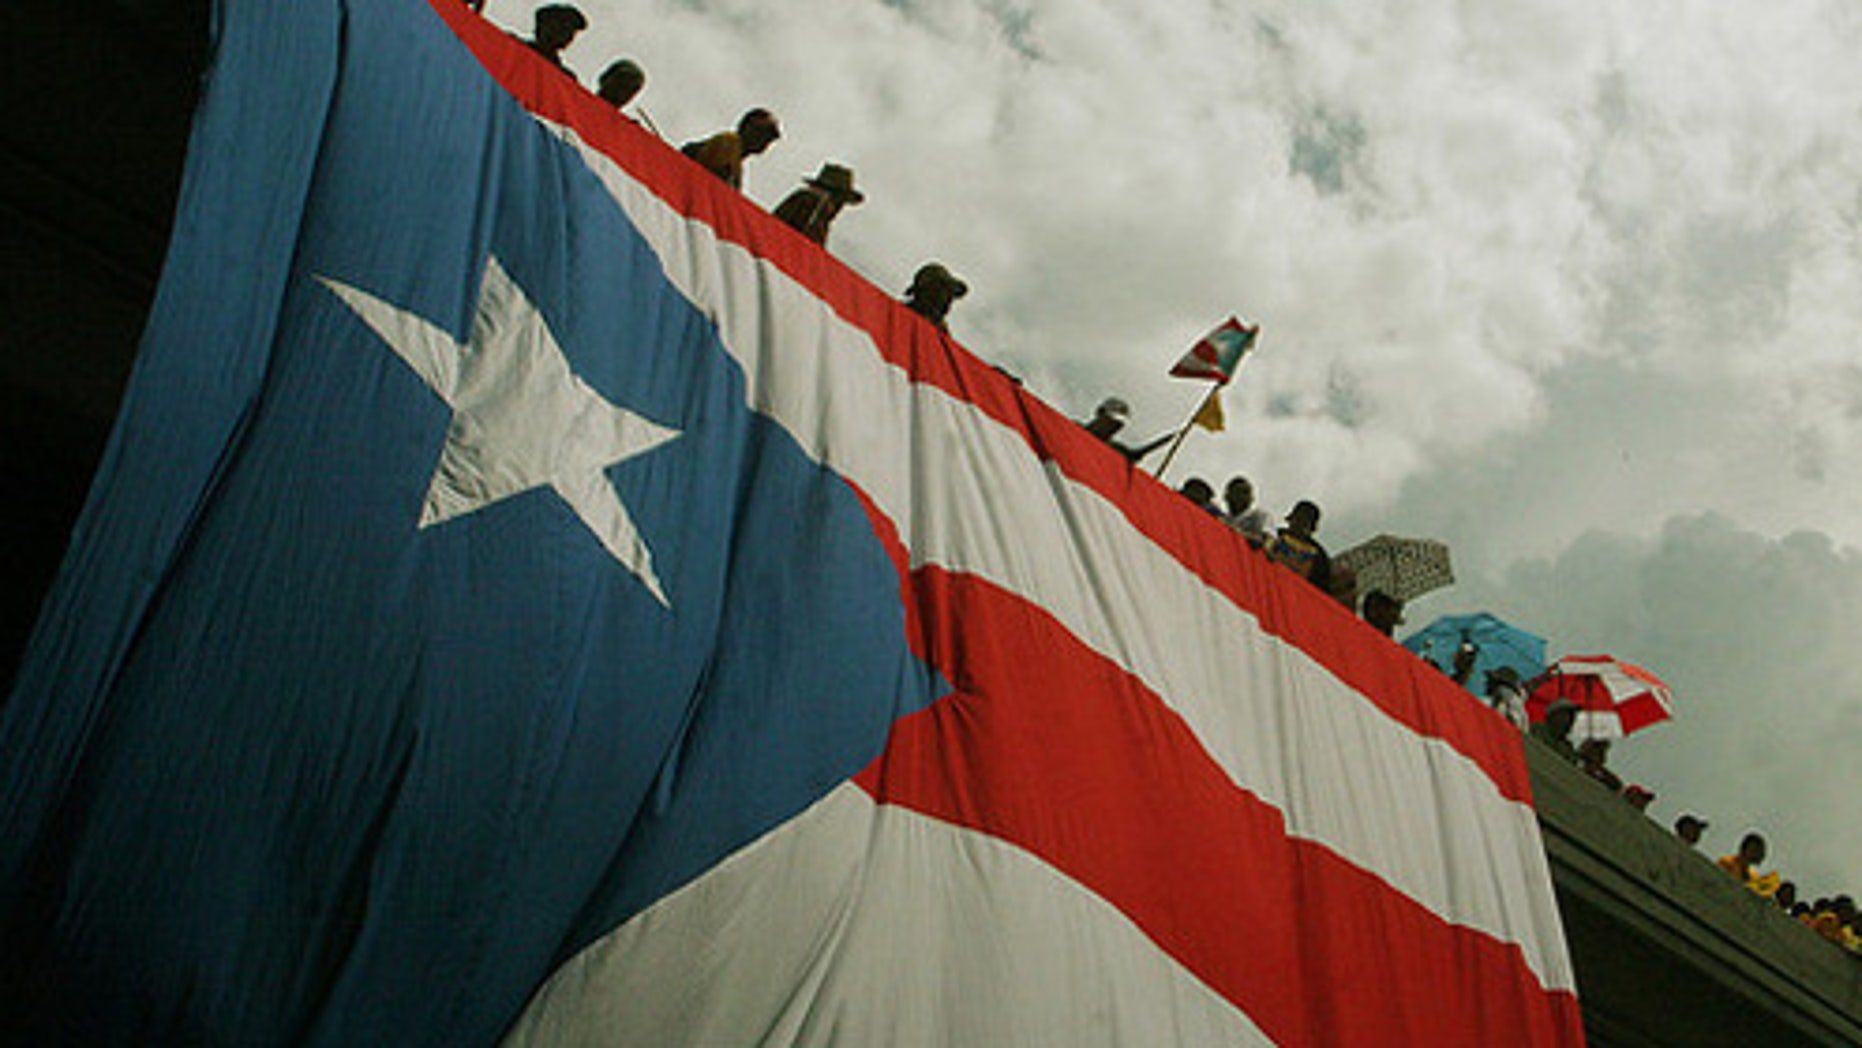 (October 15th, 2009) Thousands of protestors flooded the streets in the largest public gathering in Puerto Rican history.  The massive strike was in response to the republican governor Luis Fortu–o's decision to lay off 16,720 public workers.  ~ San Juan, Puerto Rico ~ Photo © 2009 Ricardo Figueroa